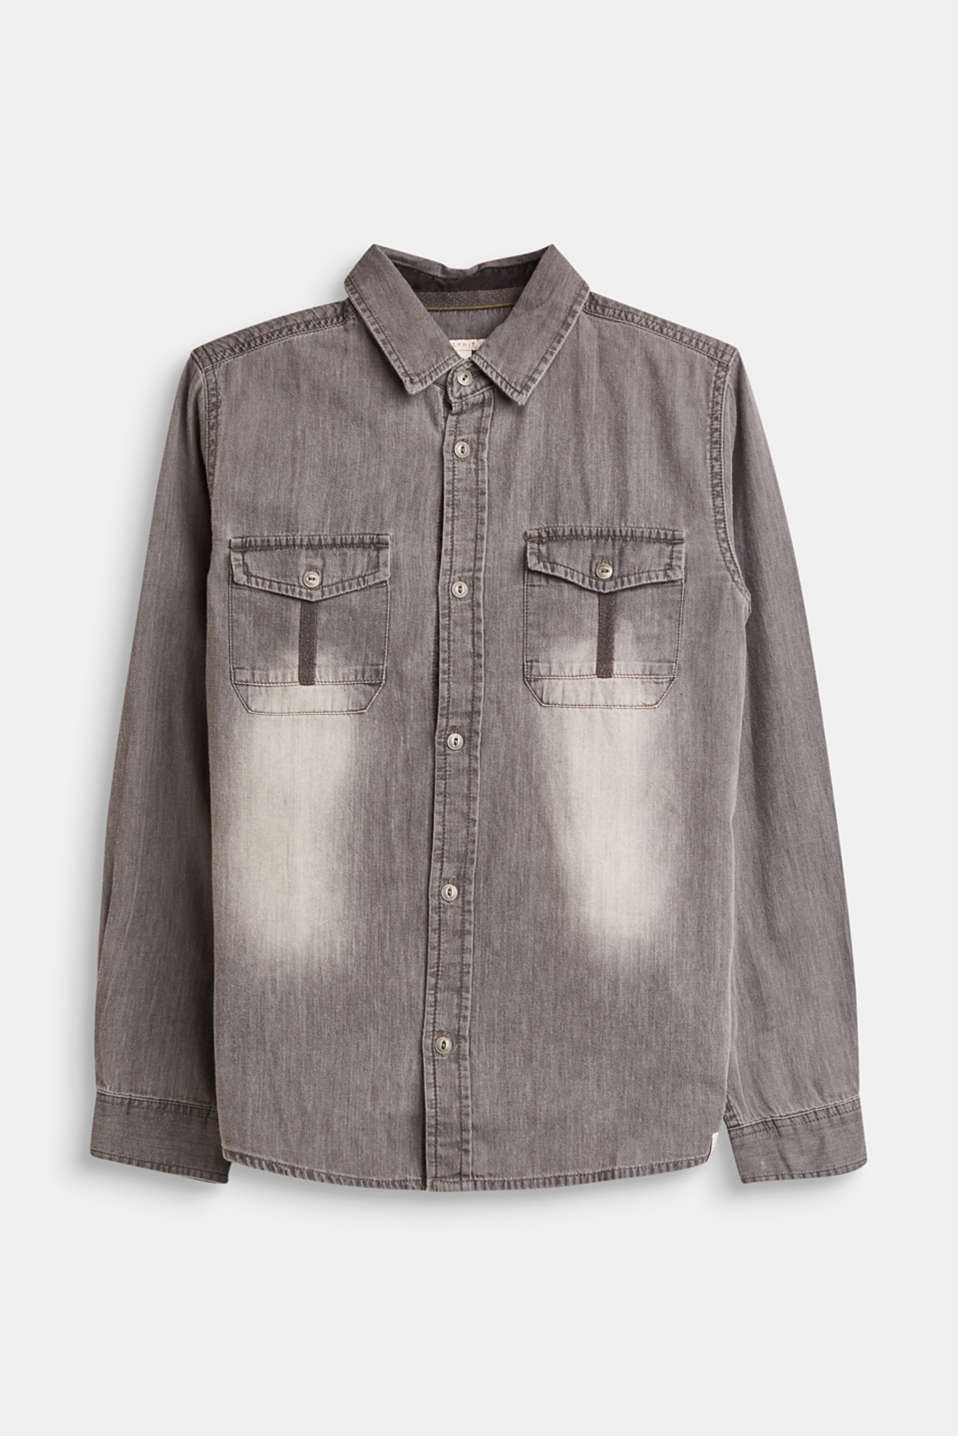 Esprit - Grey denim shirt with breast pockets, 100% cotton